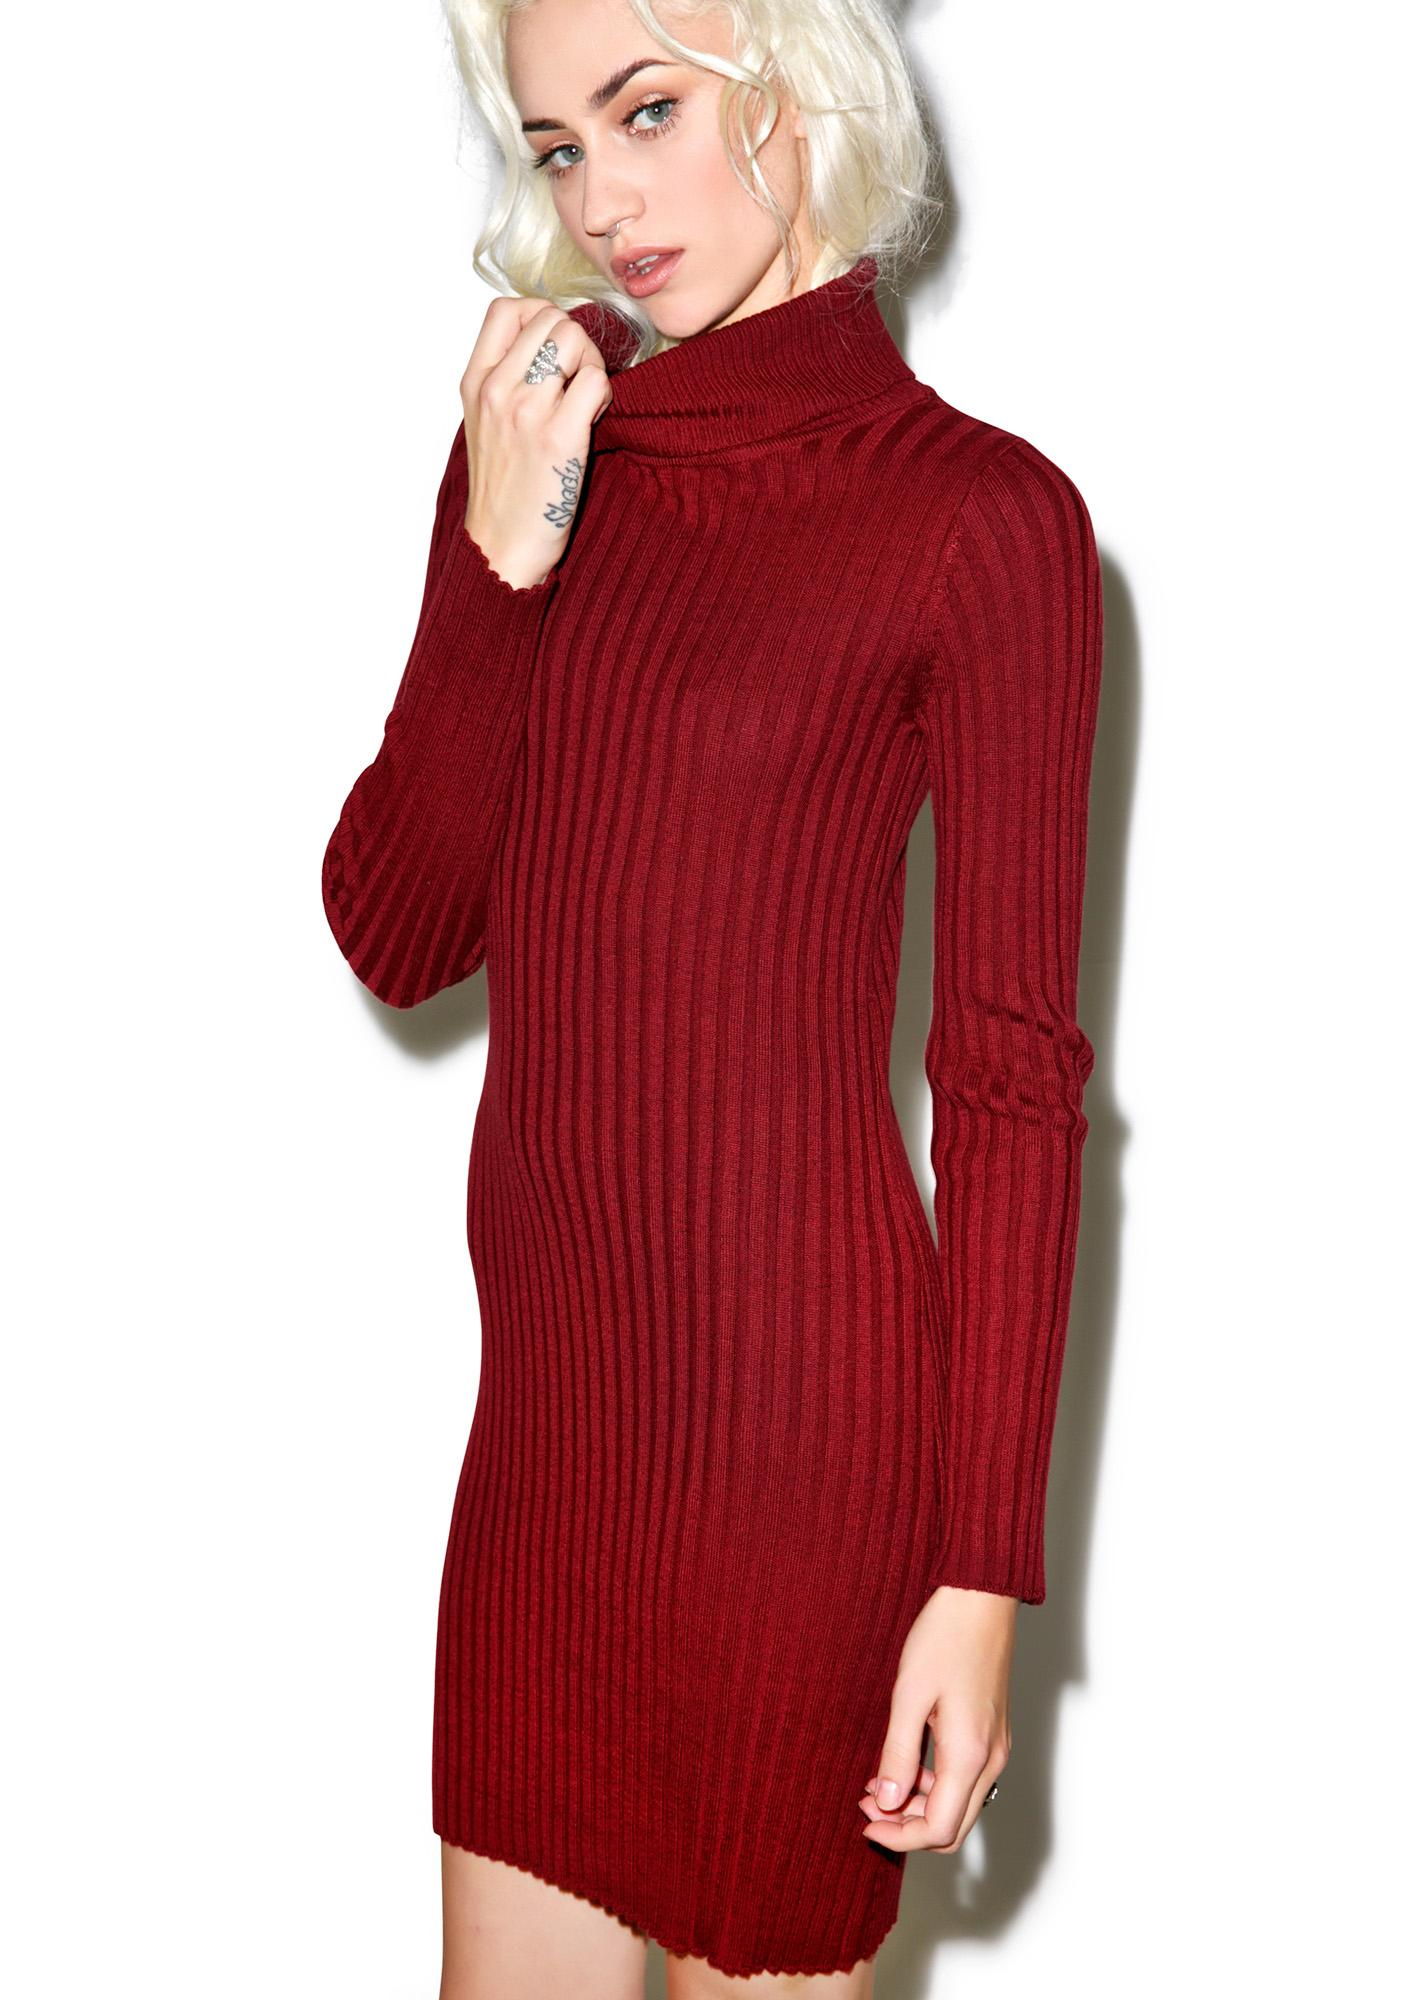 Knitting Pattern Turtleneck Dress : For Love & Lemons Everyday Knit Turtleneck Dress Dolls Kill